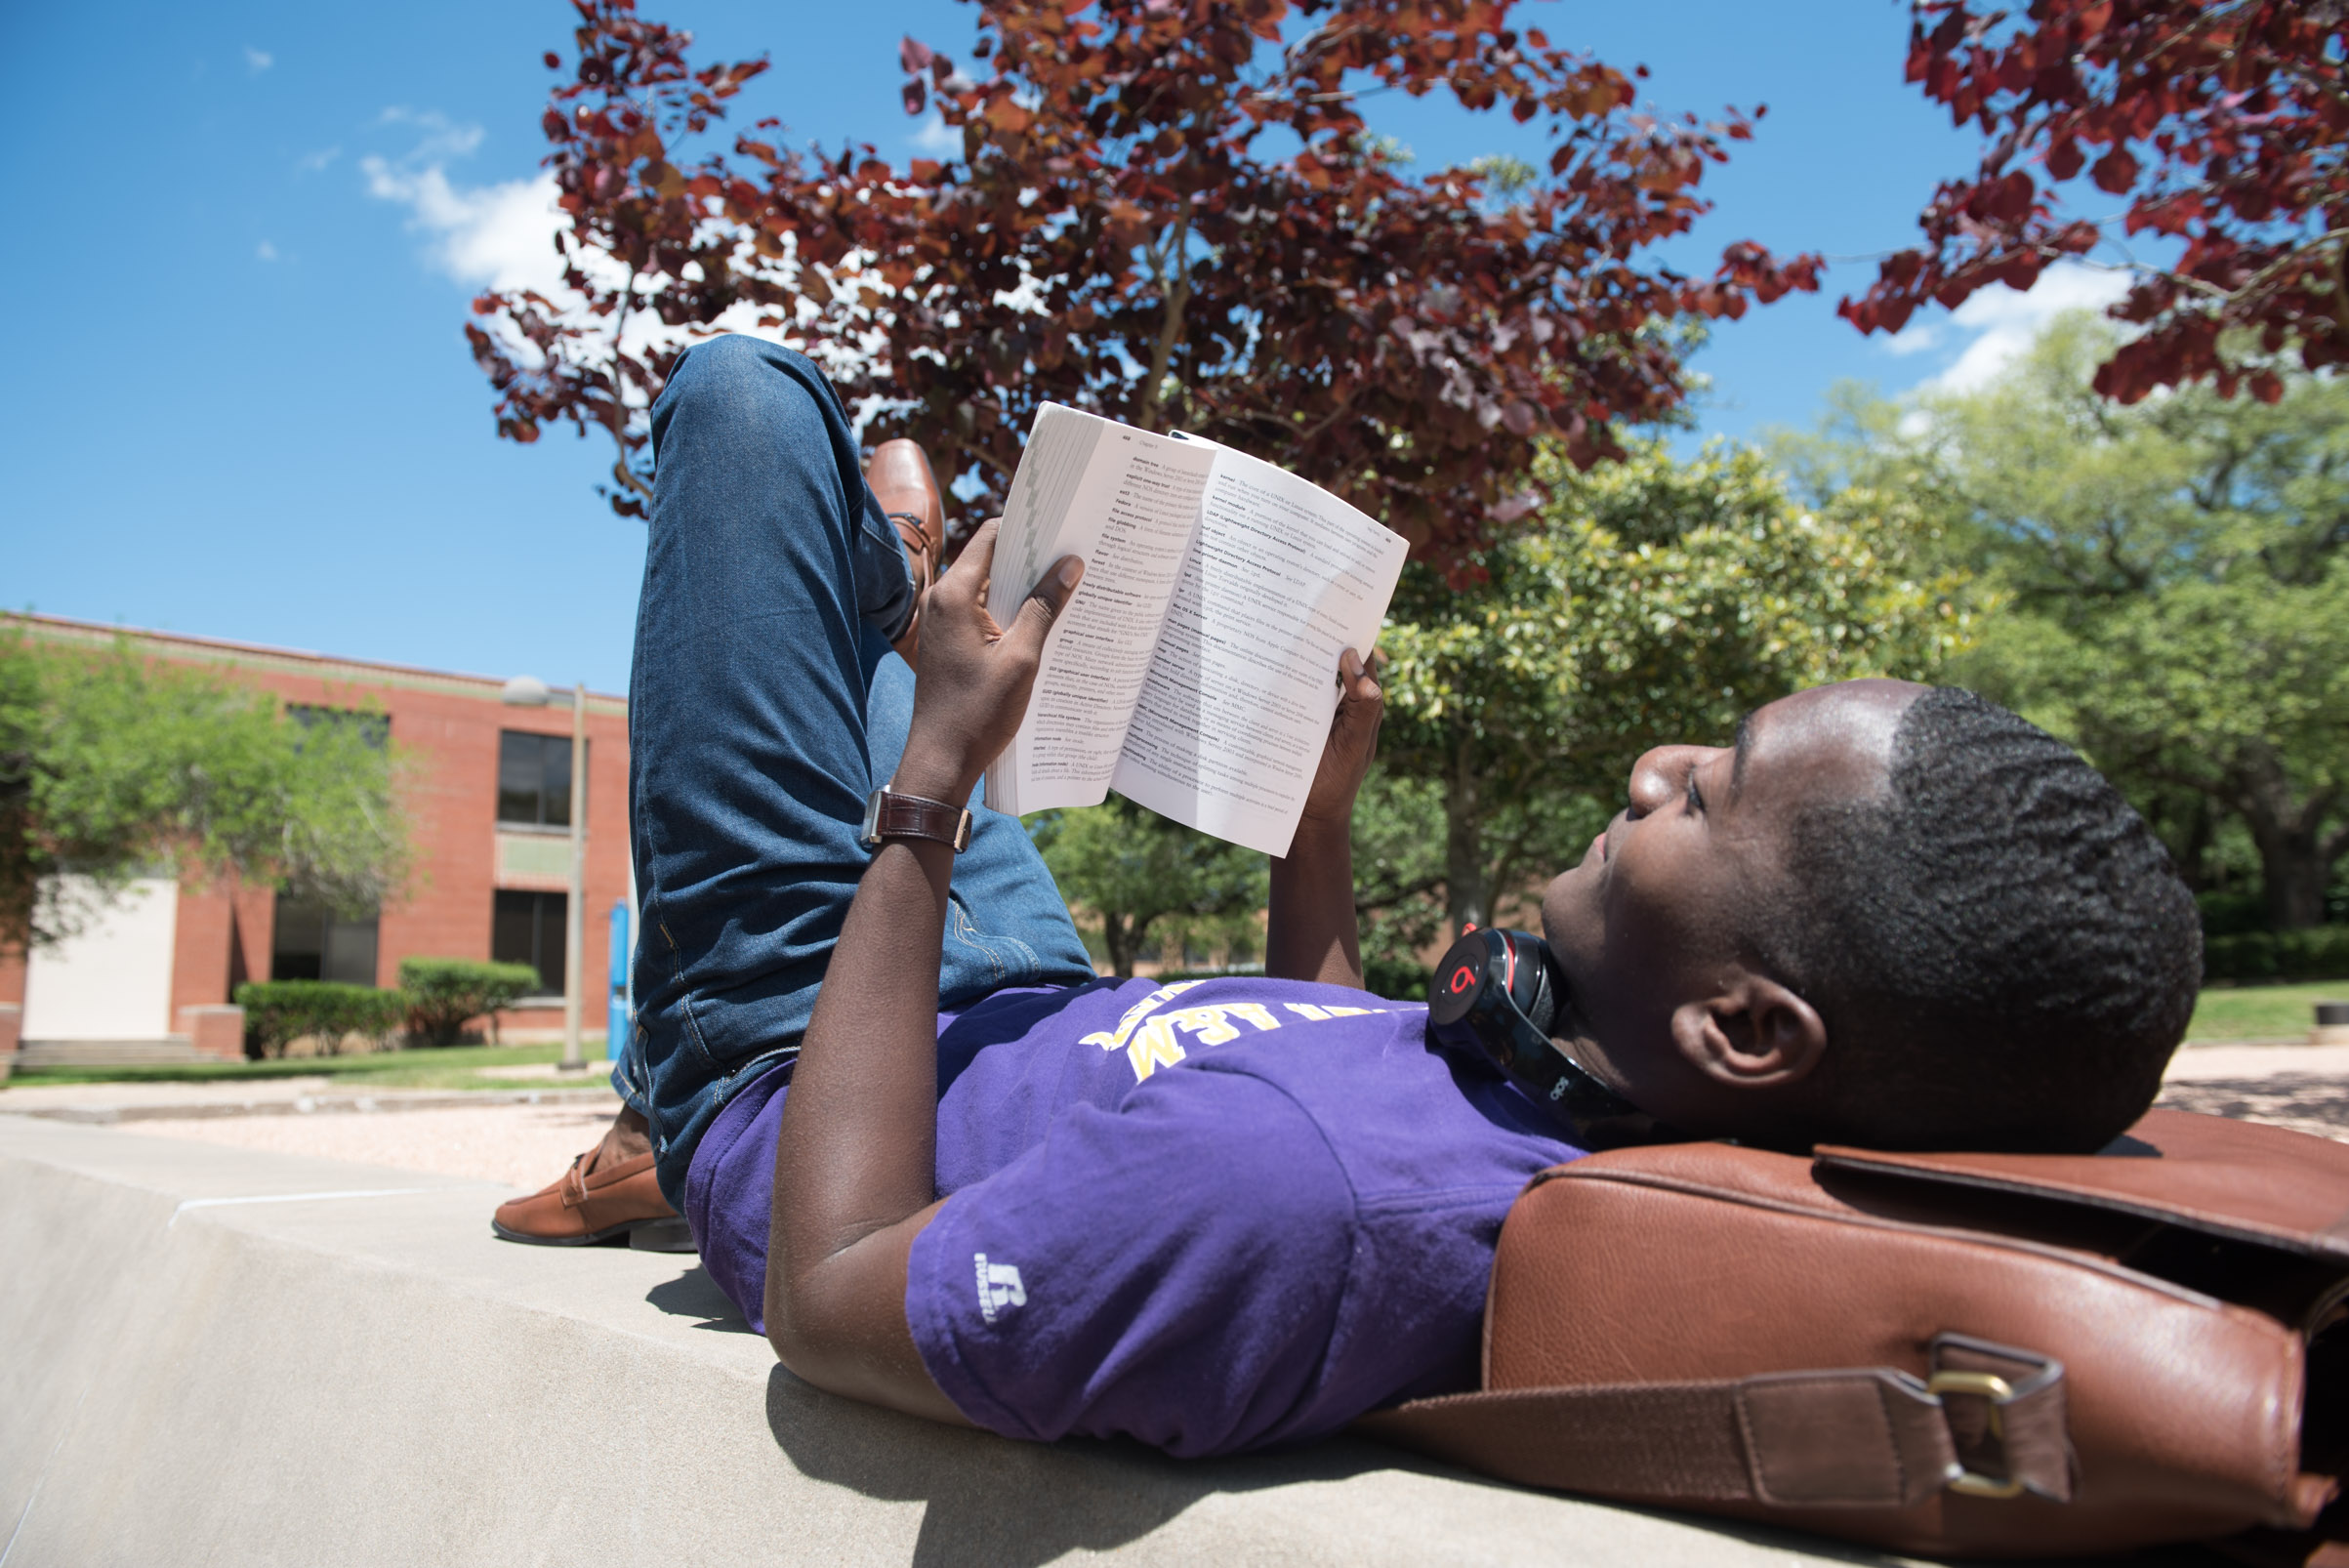 student studying outdoors